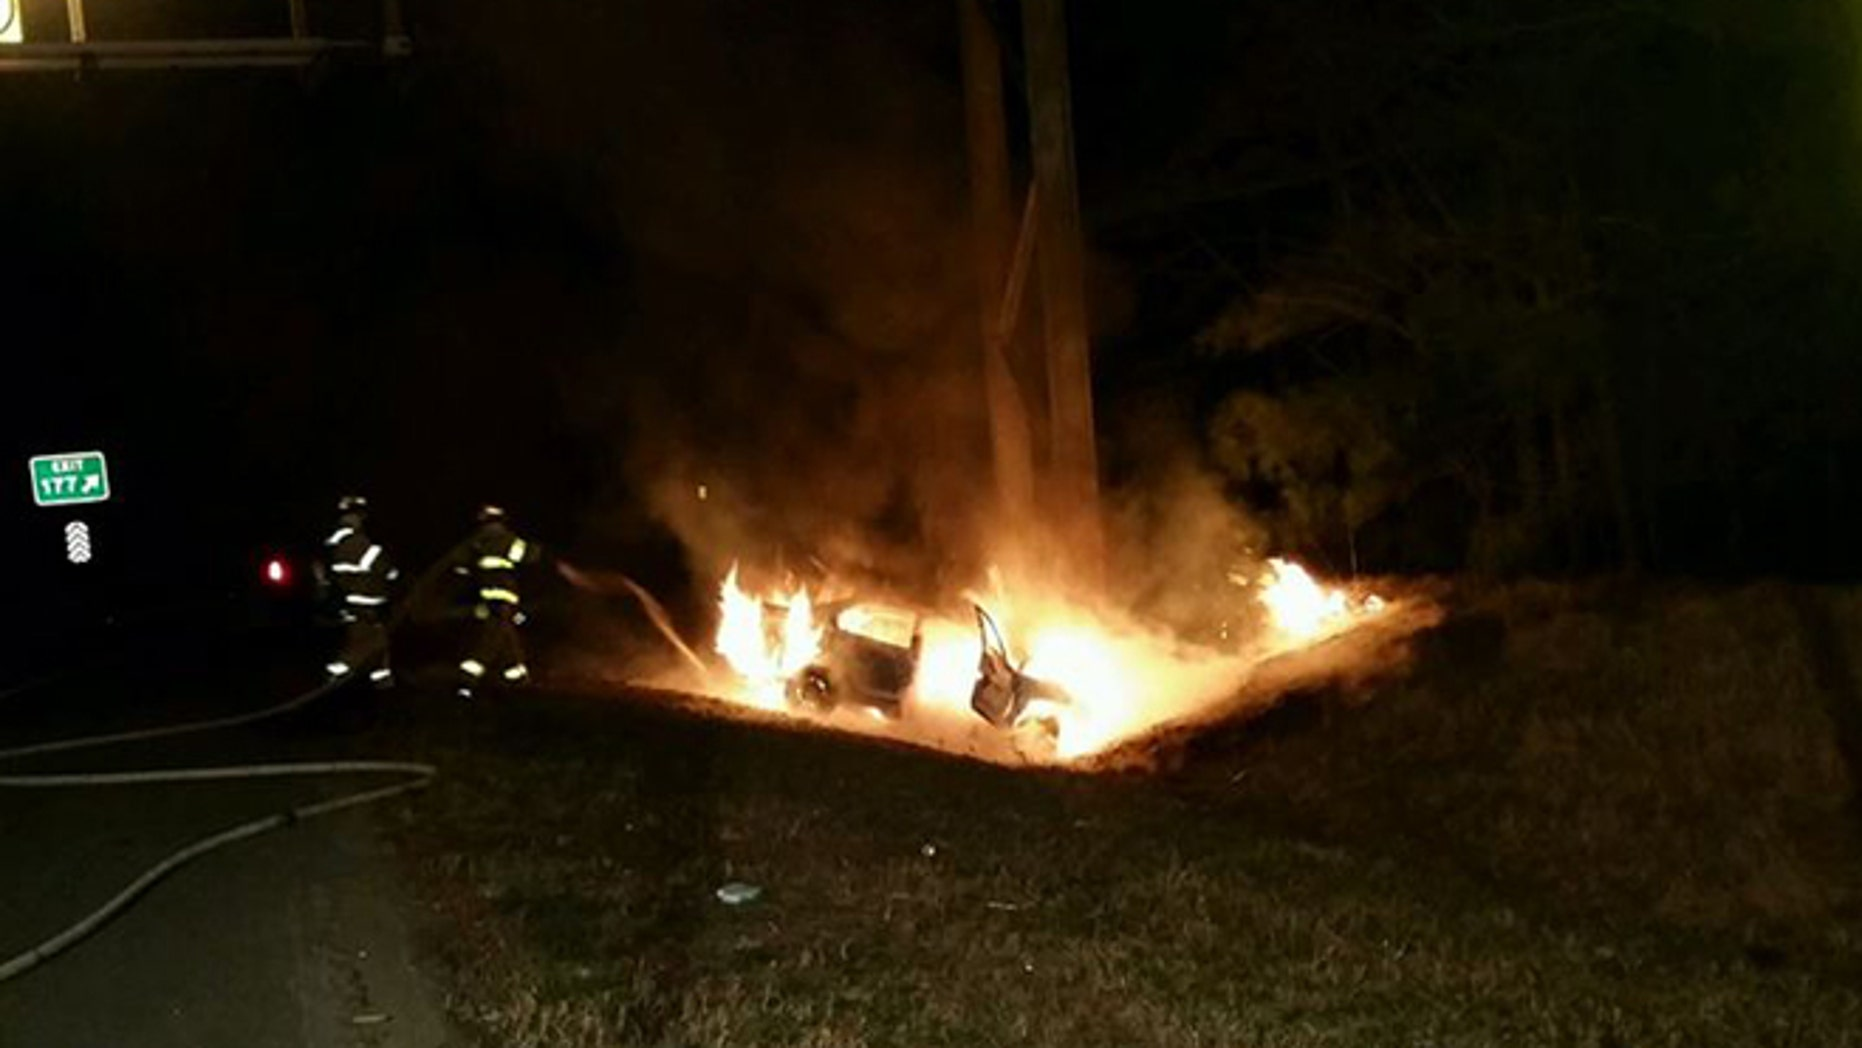 Firefighters extinguish fire on I-64 Saturday after Good Samaritan's dramatic rescue. (Henrico County Division of Fire)